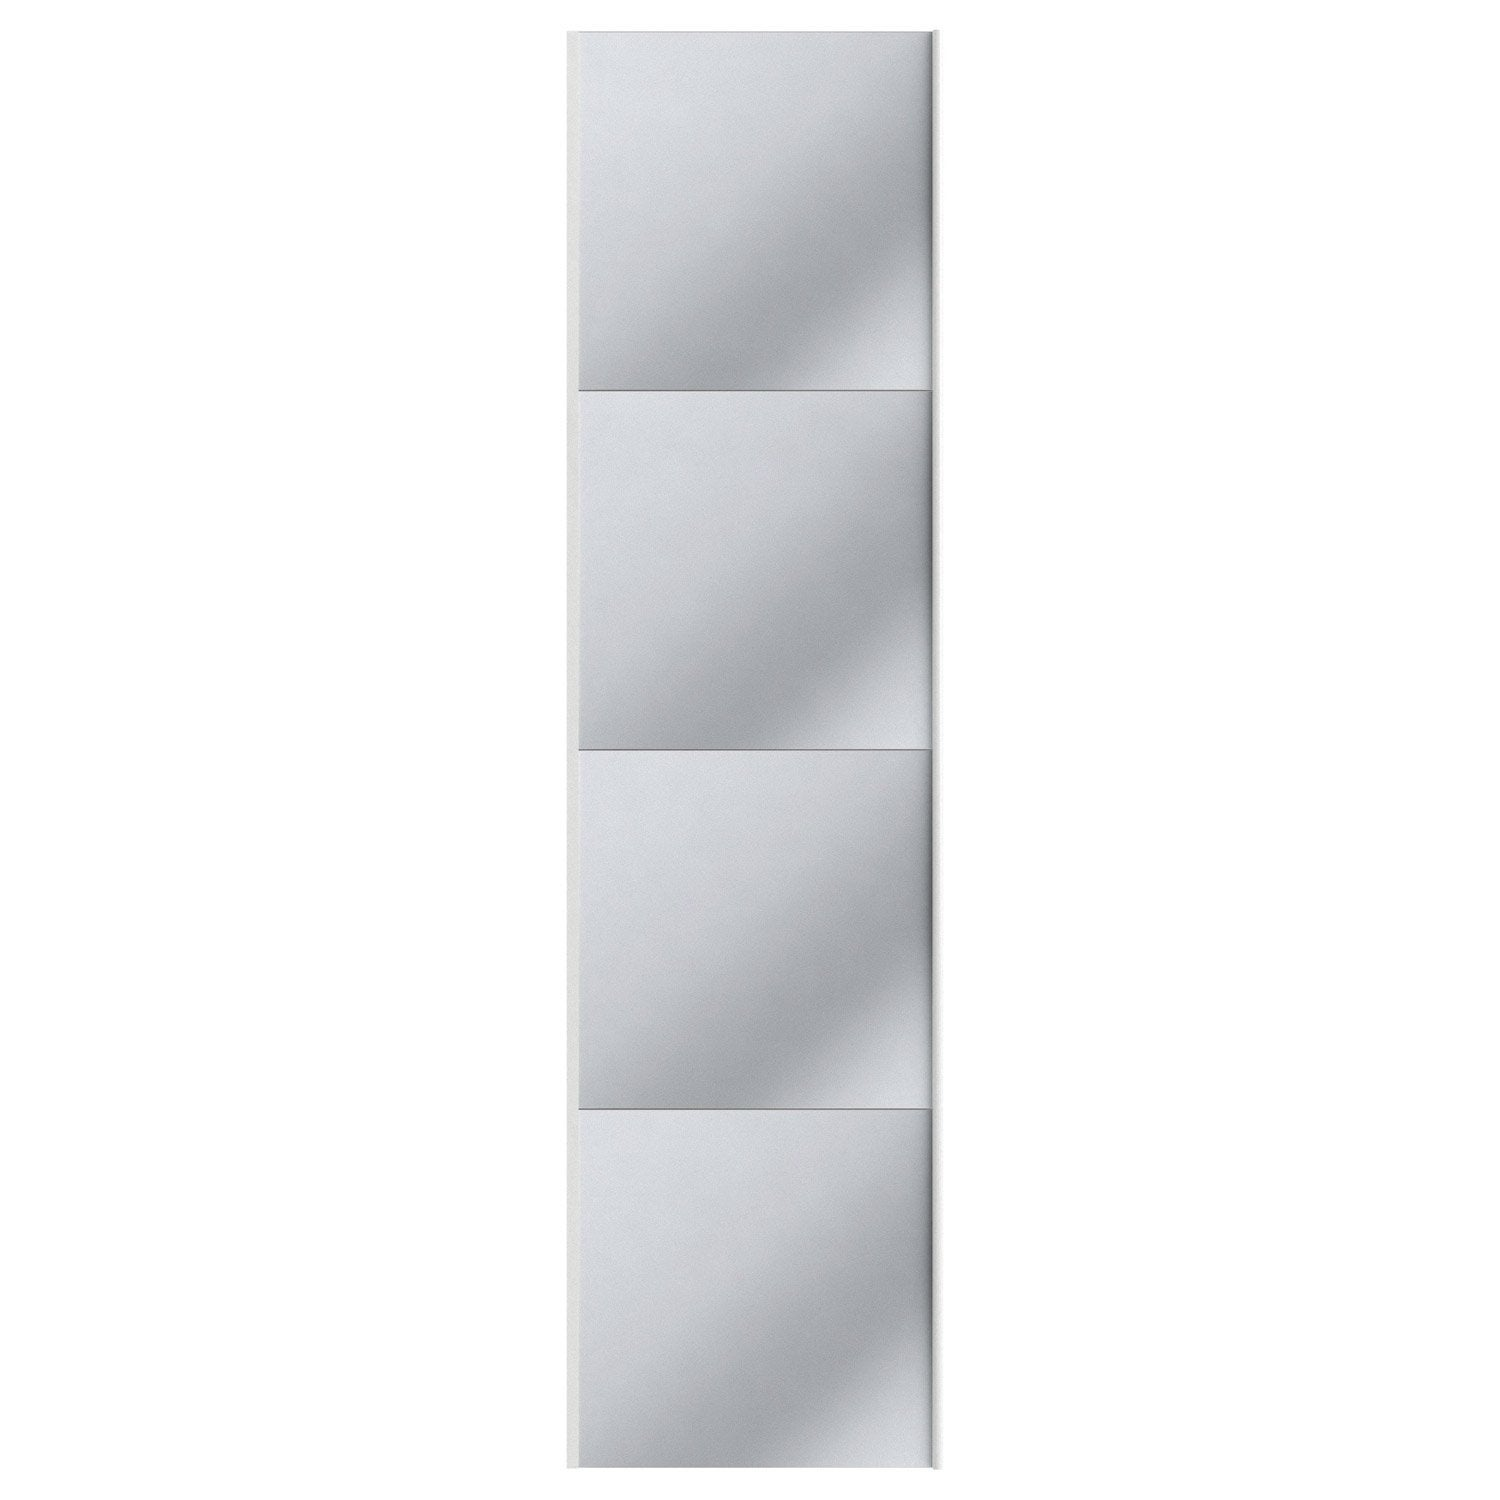 Portes coulissantes spaceo home 240 x 60 x 1 6 cm gris for Porte coulissante 60 x 96